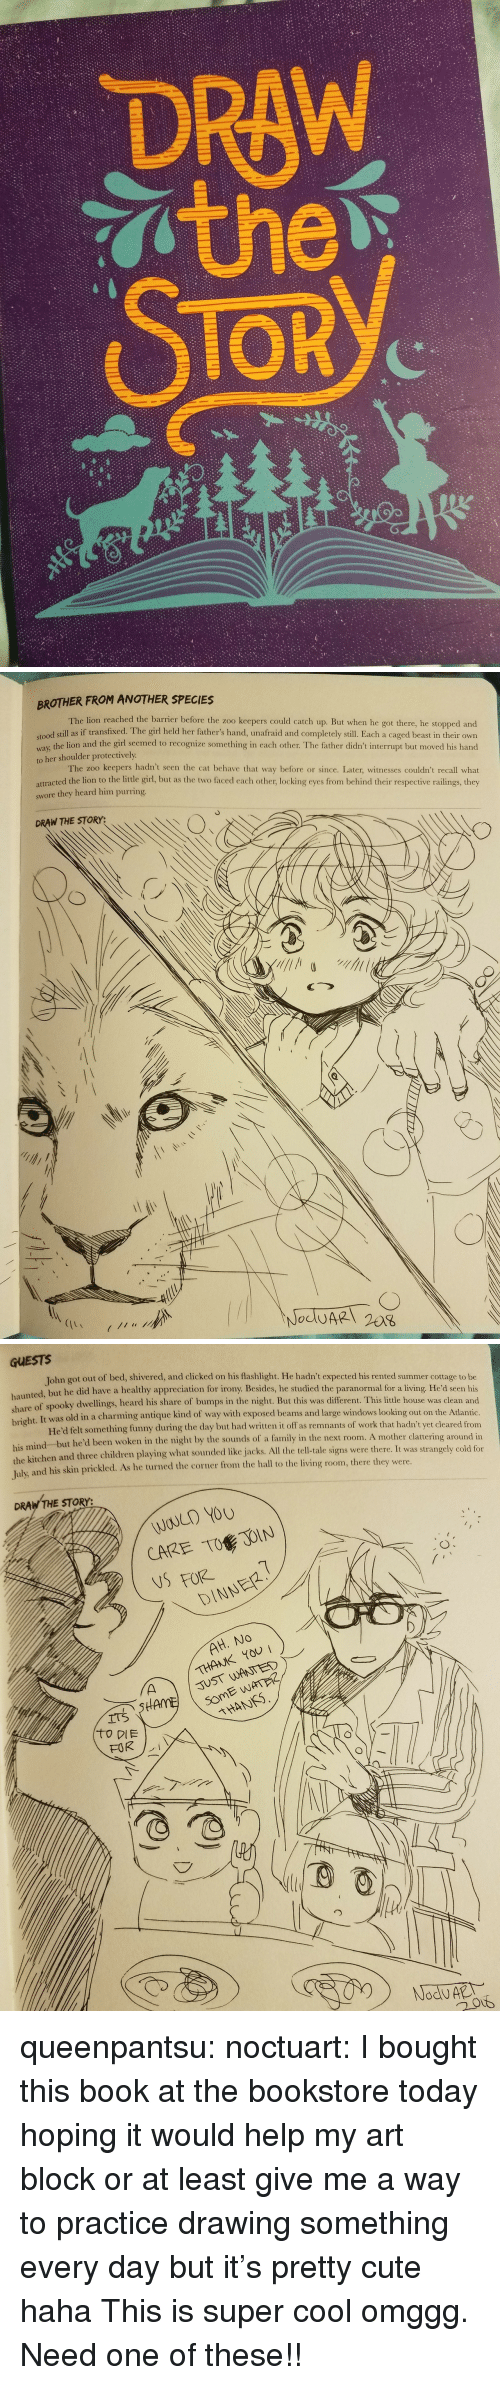 the sounds: DRAW  TOR  2/   BROTHER FROM ANOTHER SPECIES  The lion reached the barrier before the zoo keepers could catch up. But when he got there, he stopped and  dl still as if transfixed. The girl held her father's hand, unafraid and completely still. Each a caged beast in their own  way, the lion and the girl seemed to recognize something in cach other. The father didn't interrupt but moved his hand  to her shoulder protectively  The zoo keepers hadn't seen the cat behave that way before or since. Later, witnesses couldn't recall what  attracted the lion to the little girl, but as the two faced each other, locking eyes from behind their respective railings, they  swore they heard him purring  DRAW THE STORY:   GUESTS  John got out of bed, shivered, and clicked on his flashlight. He hadn't expected his rented summer cottage to be  nted, but he did have a healthy appreciation for irony. Besides, he studied the paranormal for a living. He'd seen his  share  of spooky dwellings, heard his share of bumps in the night. But this was different. This little house was clean and  It was old in a charming antique kind of way with exposed beams and large windows looking out on the Atlantic  He'd felt something funny during the day but had written it off as remnants of work that hadn't yet cleared from  right.  his mind but he'd been woken in the night by the sounds of a family in the next room. A mother  the kitchen and three children playing what sounded like jacks. All the tell-tale signs were there. It was stran  Tulx  and his skin prickled. As he turned the corner from the hall to the living room, there they were.  clattering around in  gely cold for  DRAW THE STORY:  WOULD YOU  CARE TO JOIN  NSFORE  DINNER  THANK YOU  JUST WANTED  THANS queenpantsu:  noctuart:  I bought this book at the bookstore today hoping it would help my art block or at least give me a way to practice drawing something every day but it's pretty cute haha  This is super cool omggg. Need one of these!!